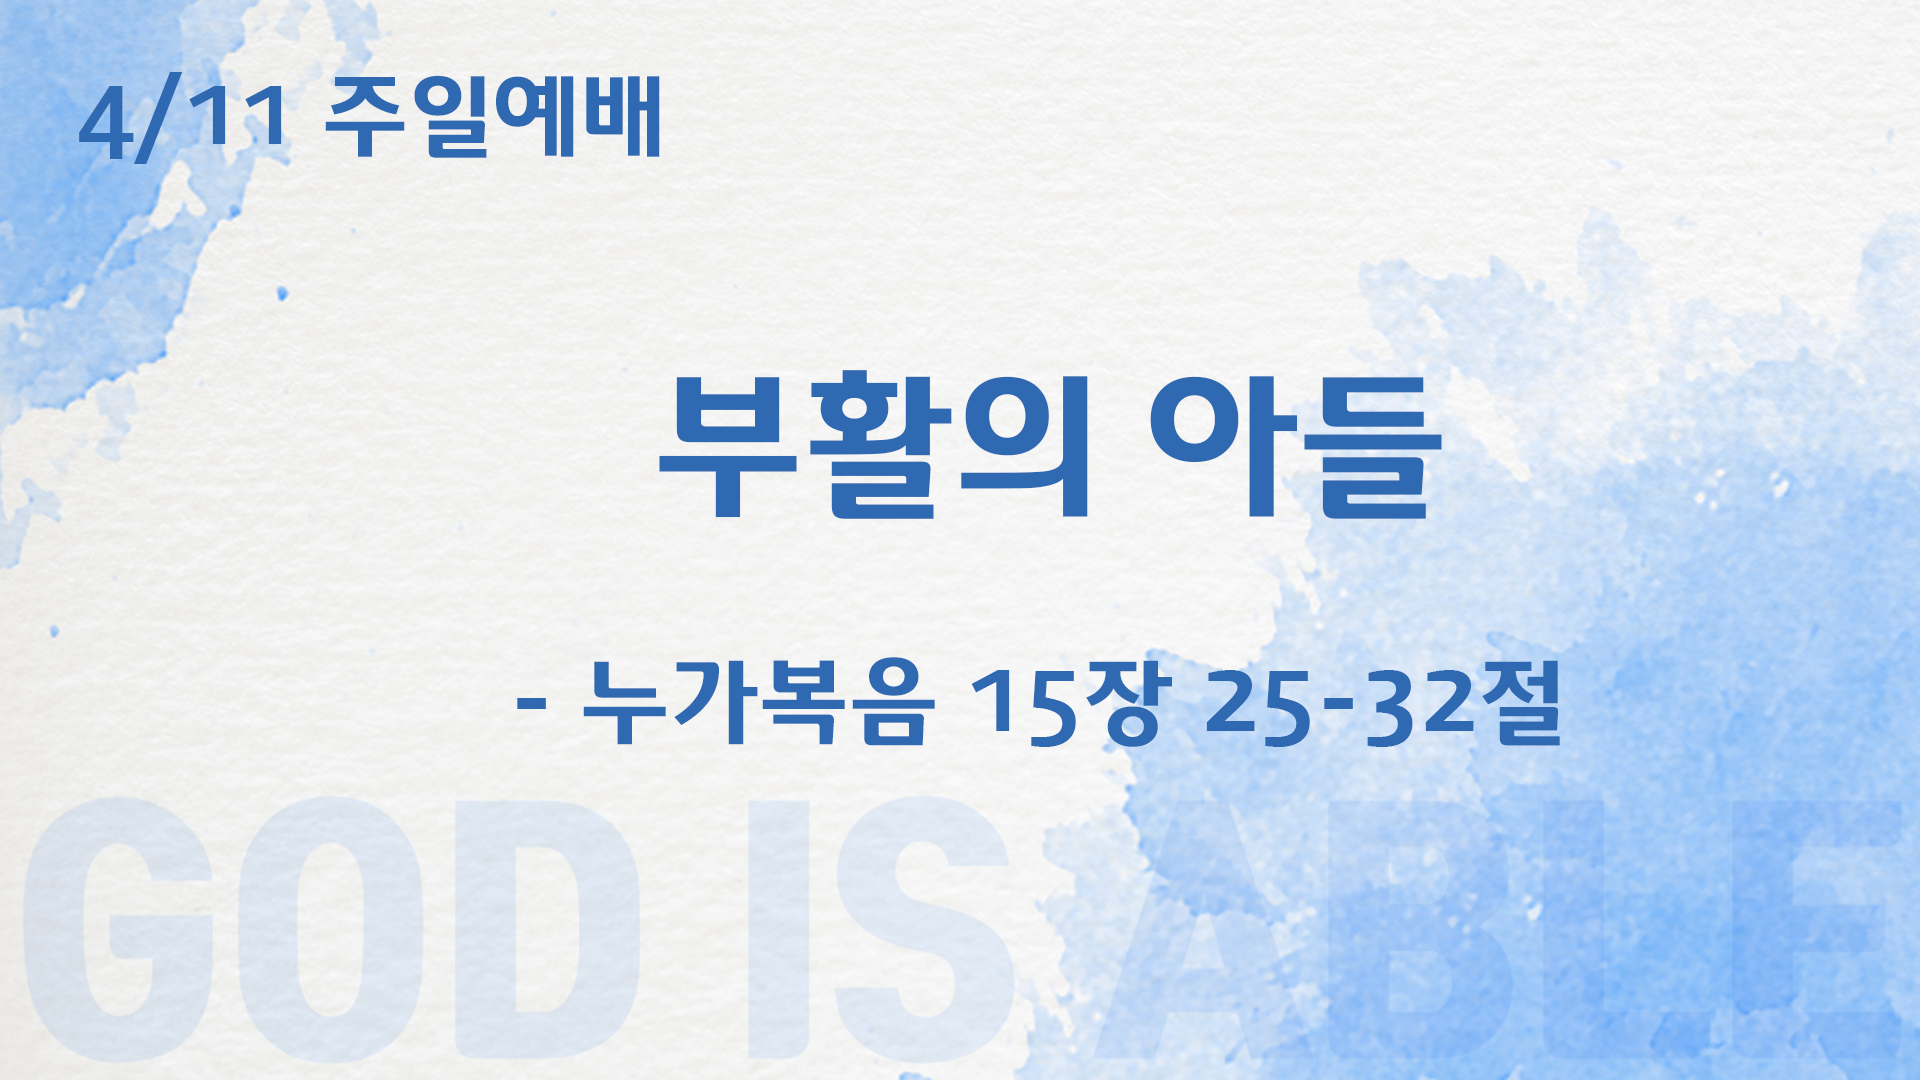 You are currently viewing 04.11.2021 말씀